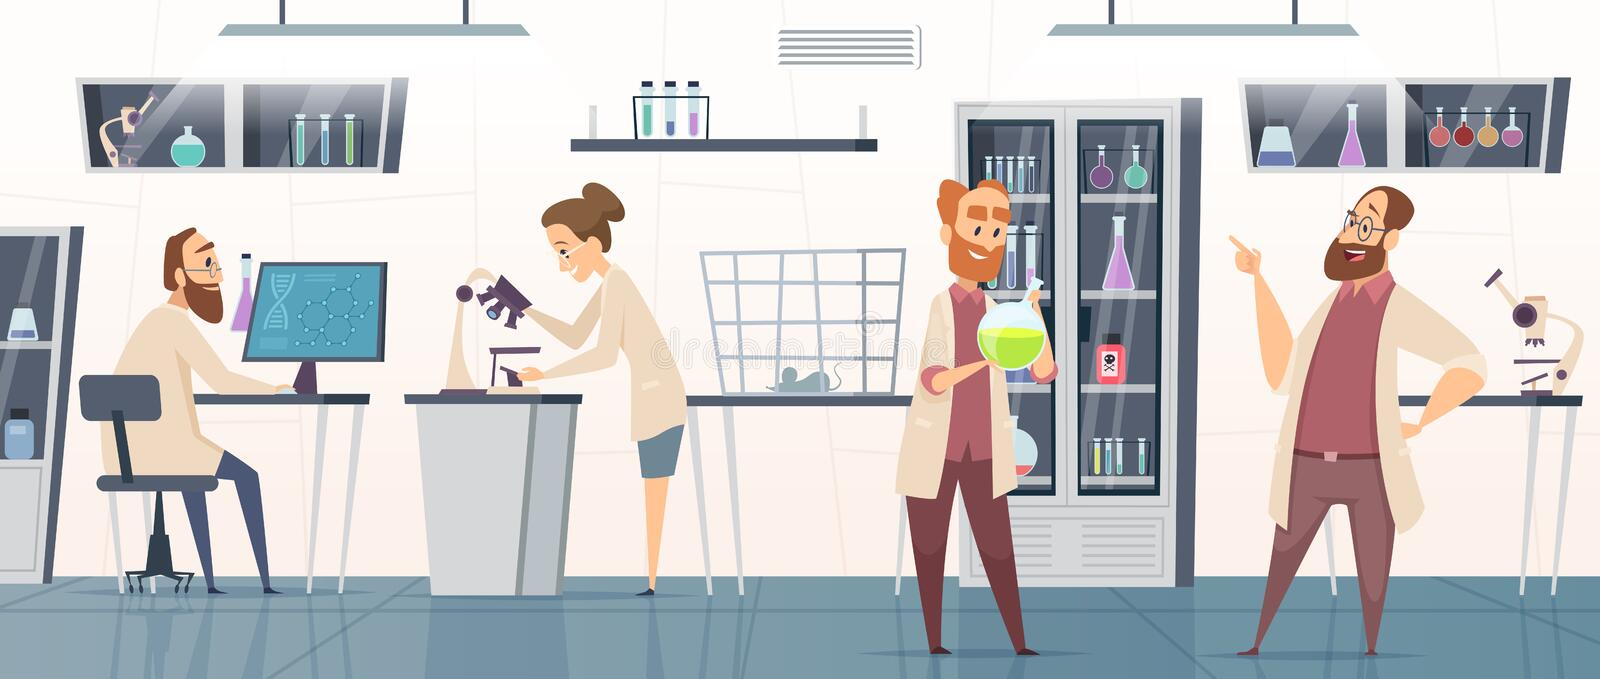 Scientific laboratory. Interior modern chemical pharmaceutical medical lab with people working innovation technology vector illustration